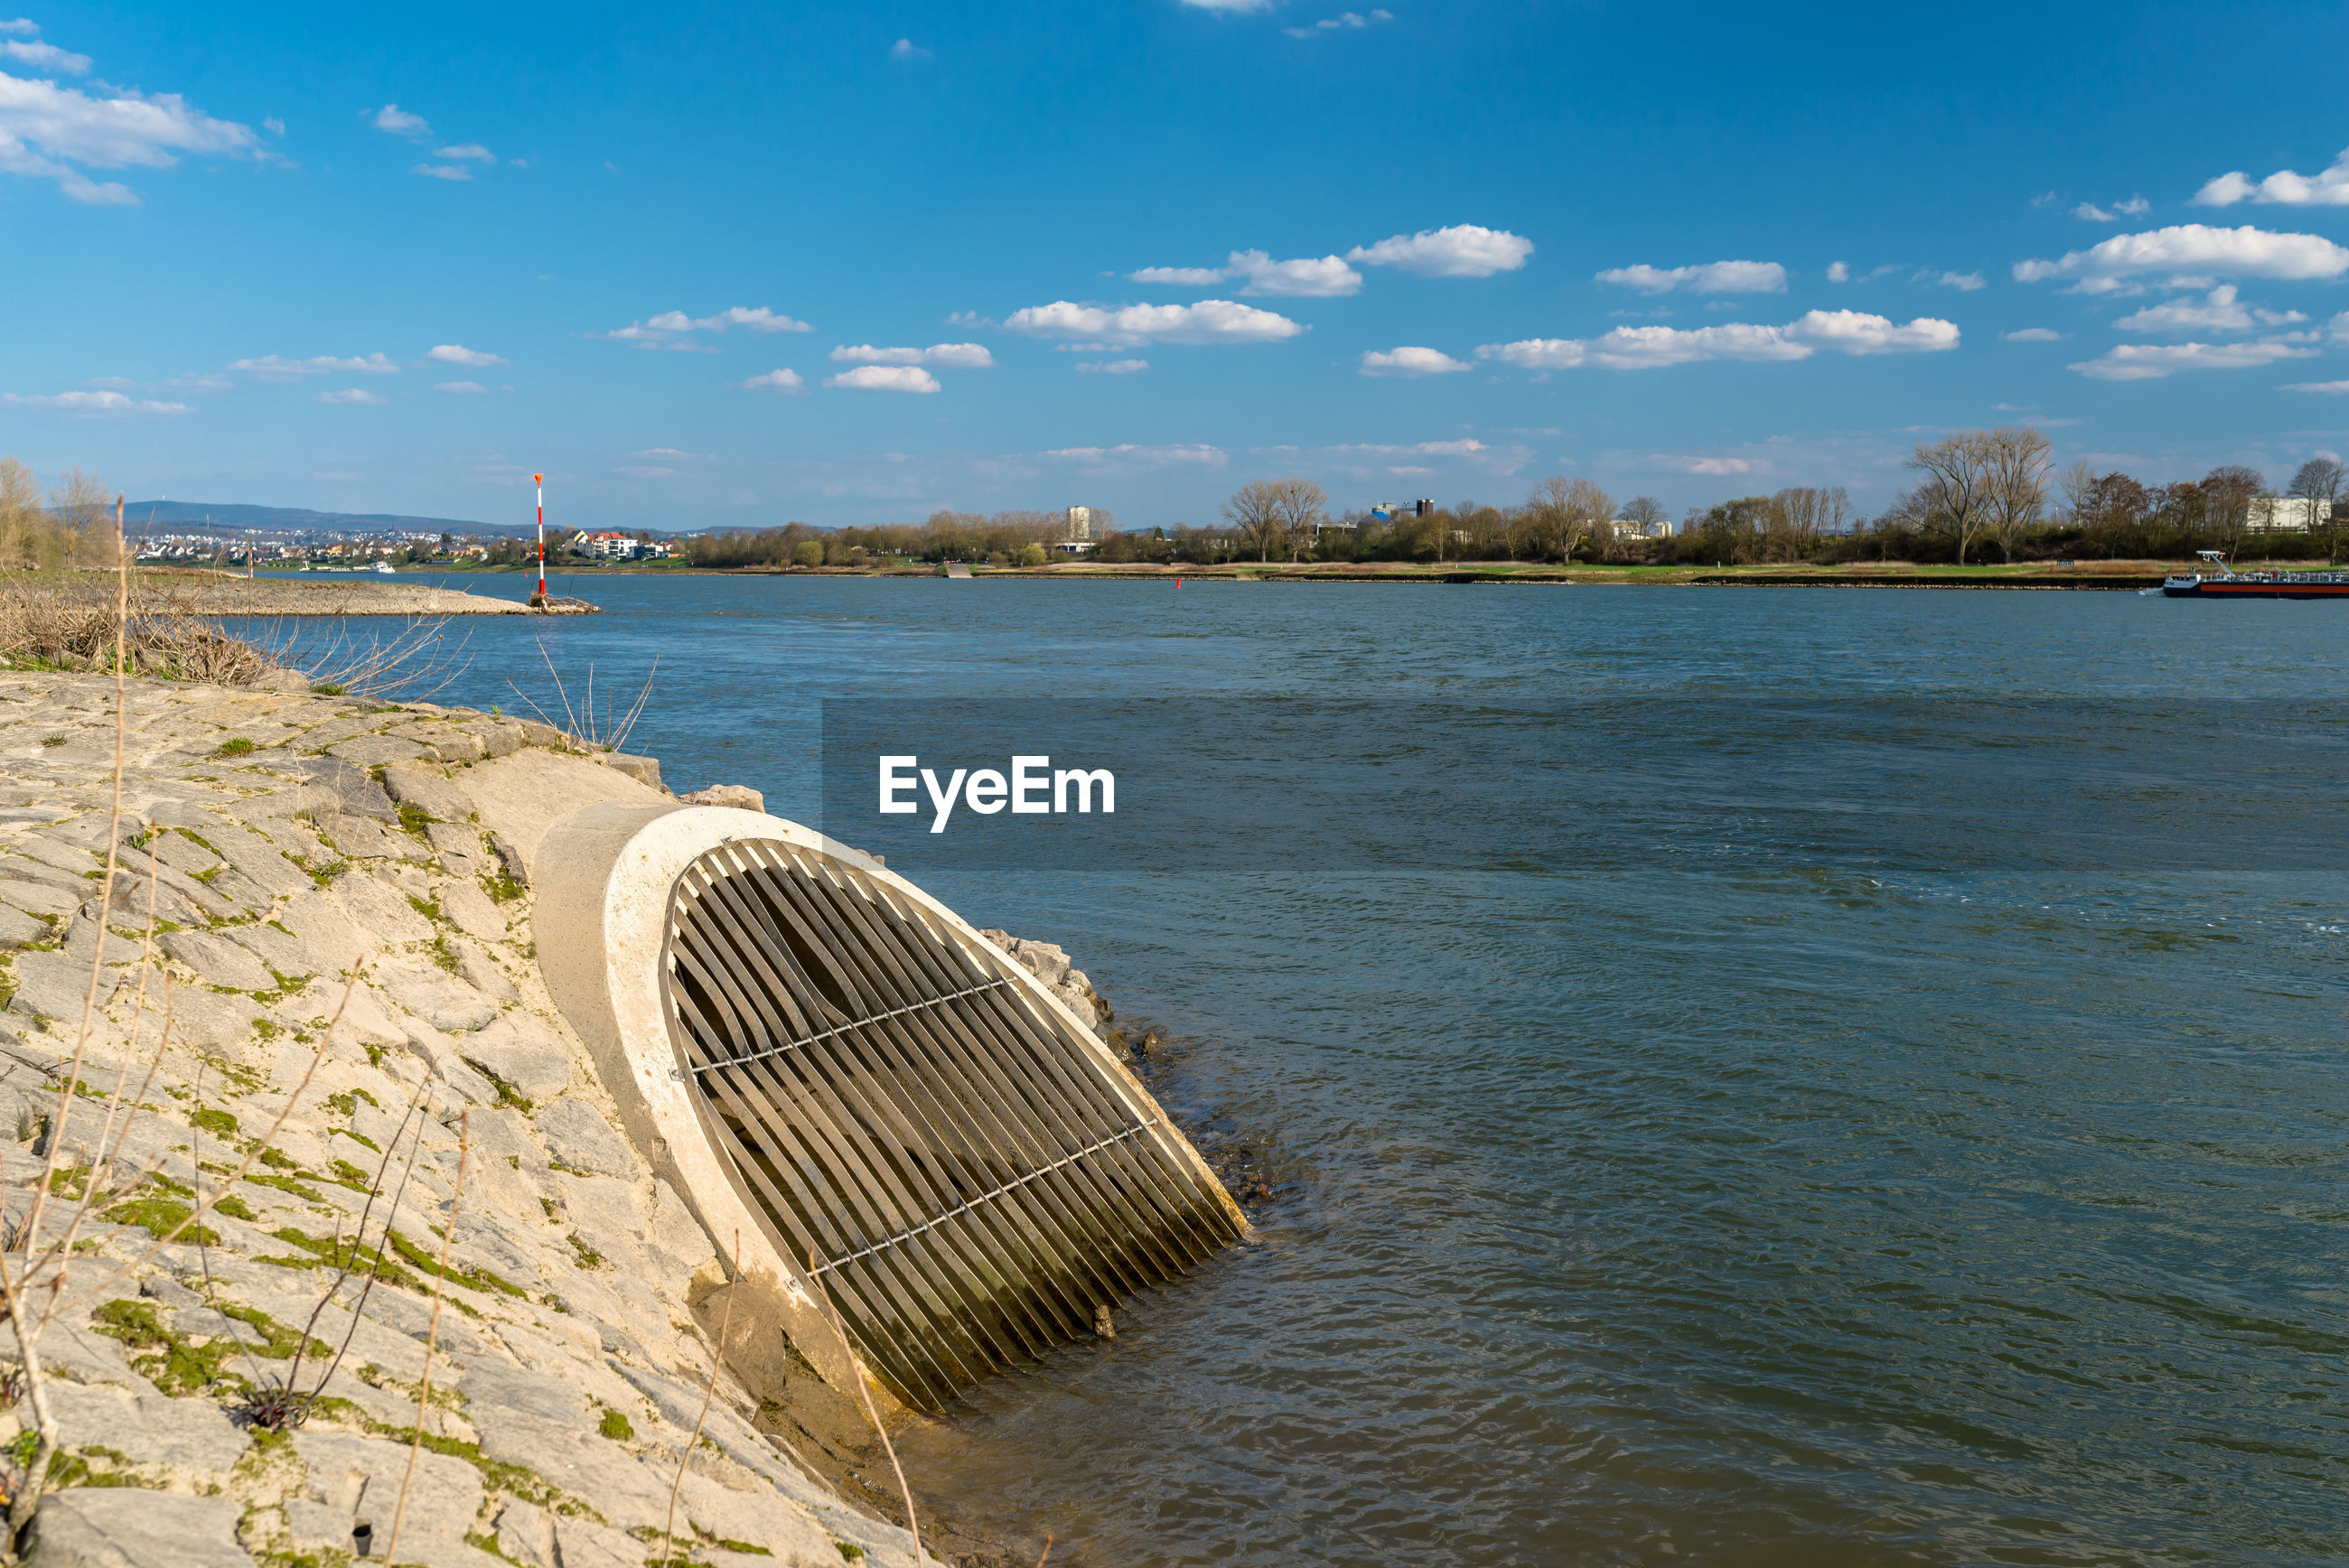 An oblique sewer that flows into the rhine river in western germany.